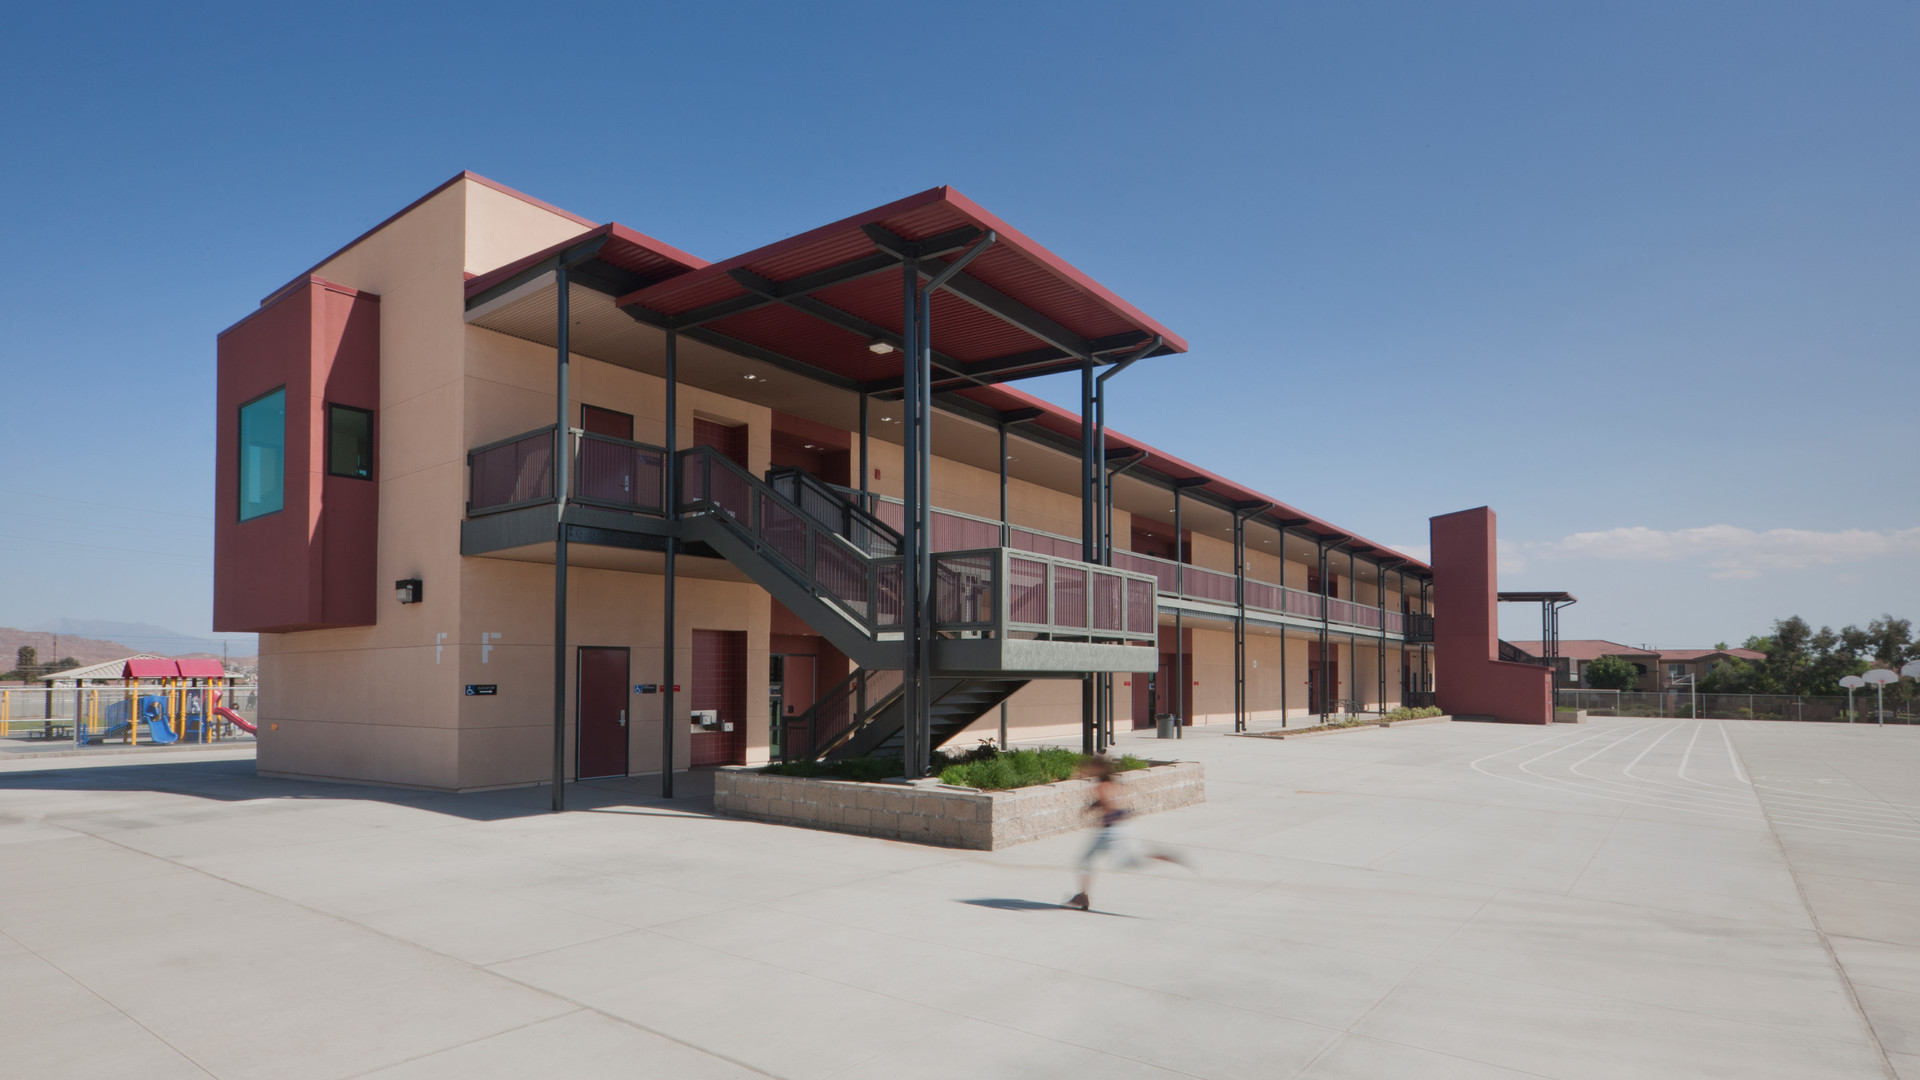 New Two-Story Classroom Building, Armada Elementary School